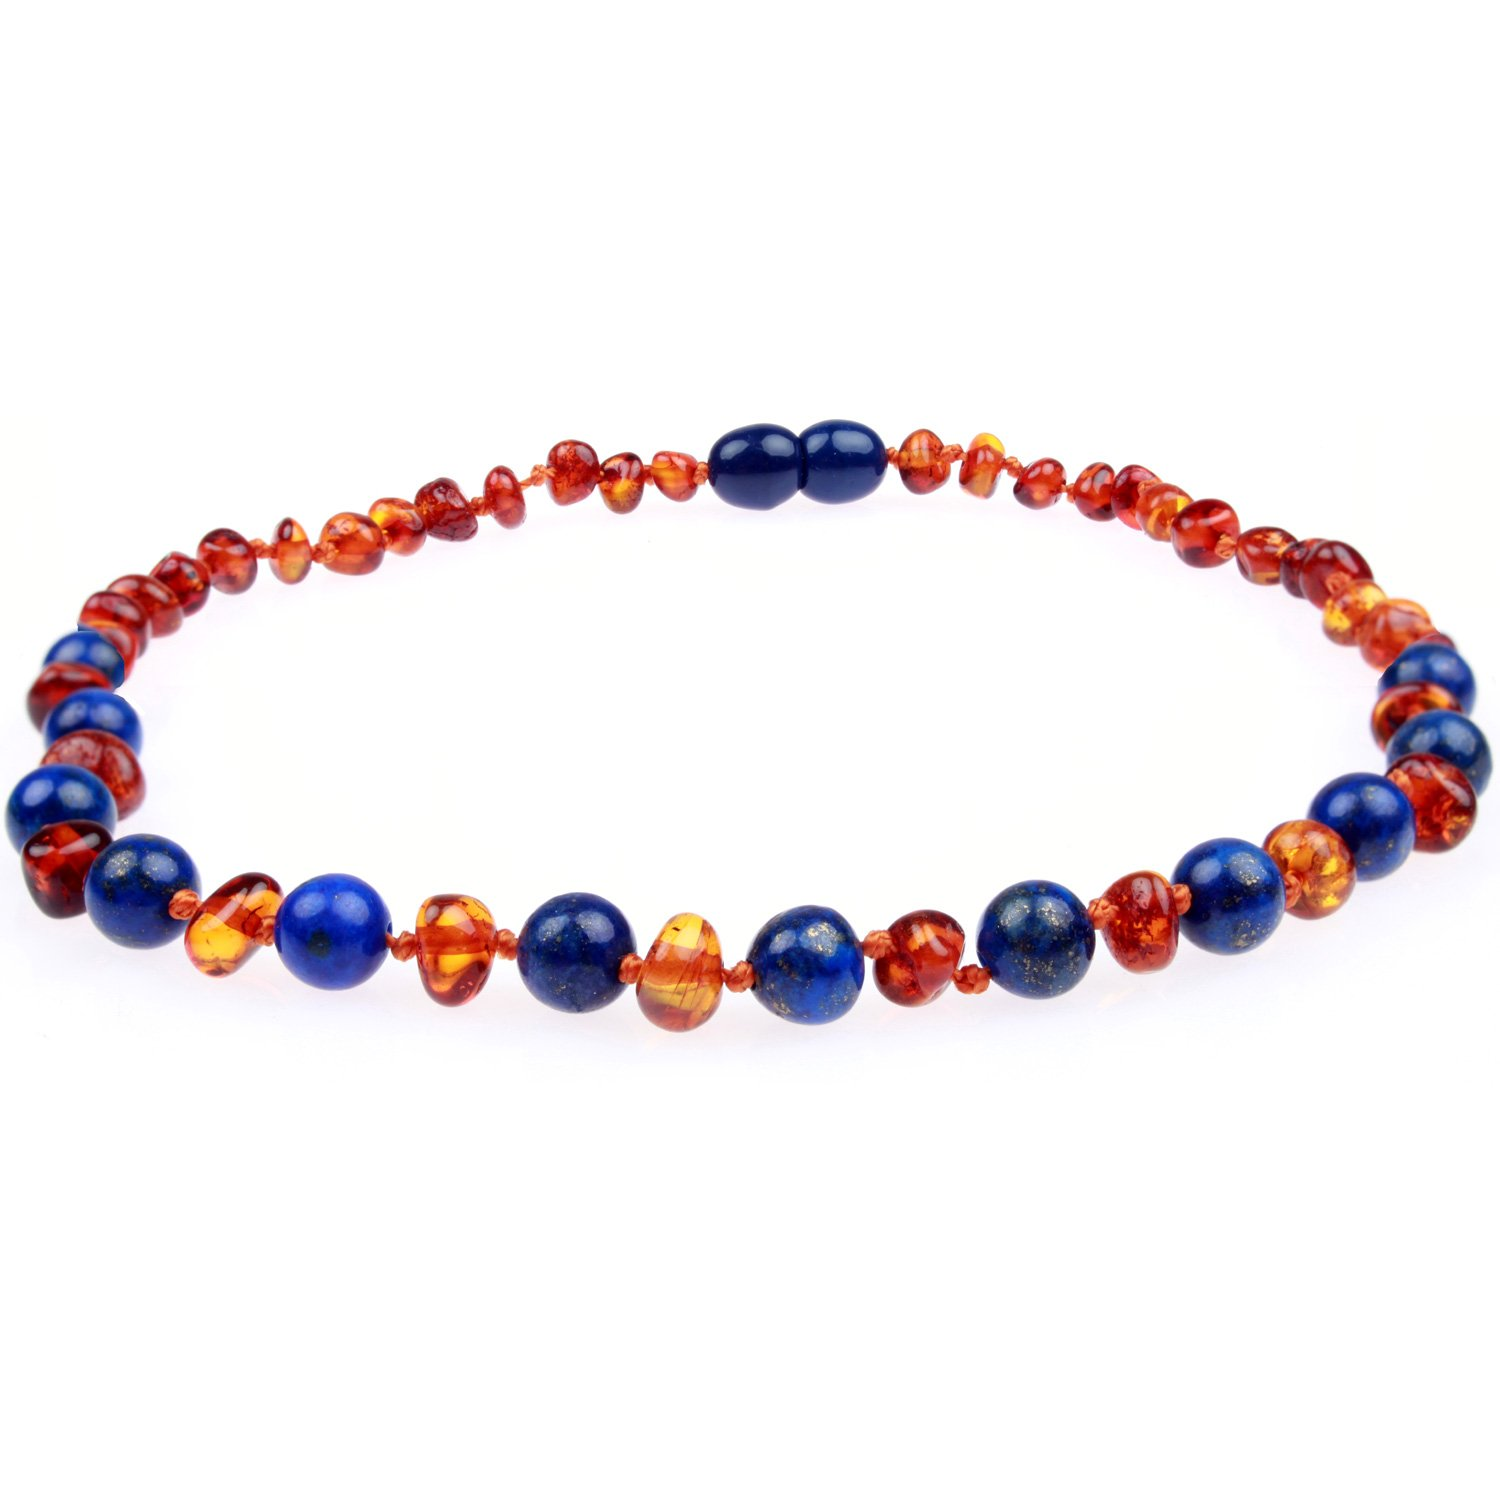 Baltic Amber Teething Necklace Gift Set Free Silicone Teething Pendant $15 Value All Natural Teething Pain Relief Handcrafted 100/% USA Lab-Tested Authentic Amber Lapis//Cognac - 12.5 Inches